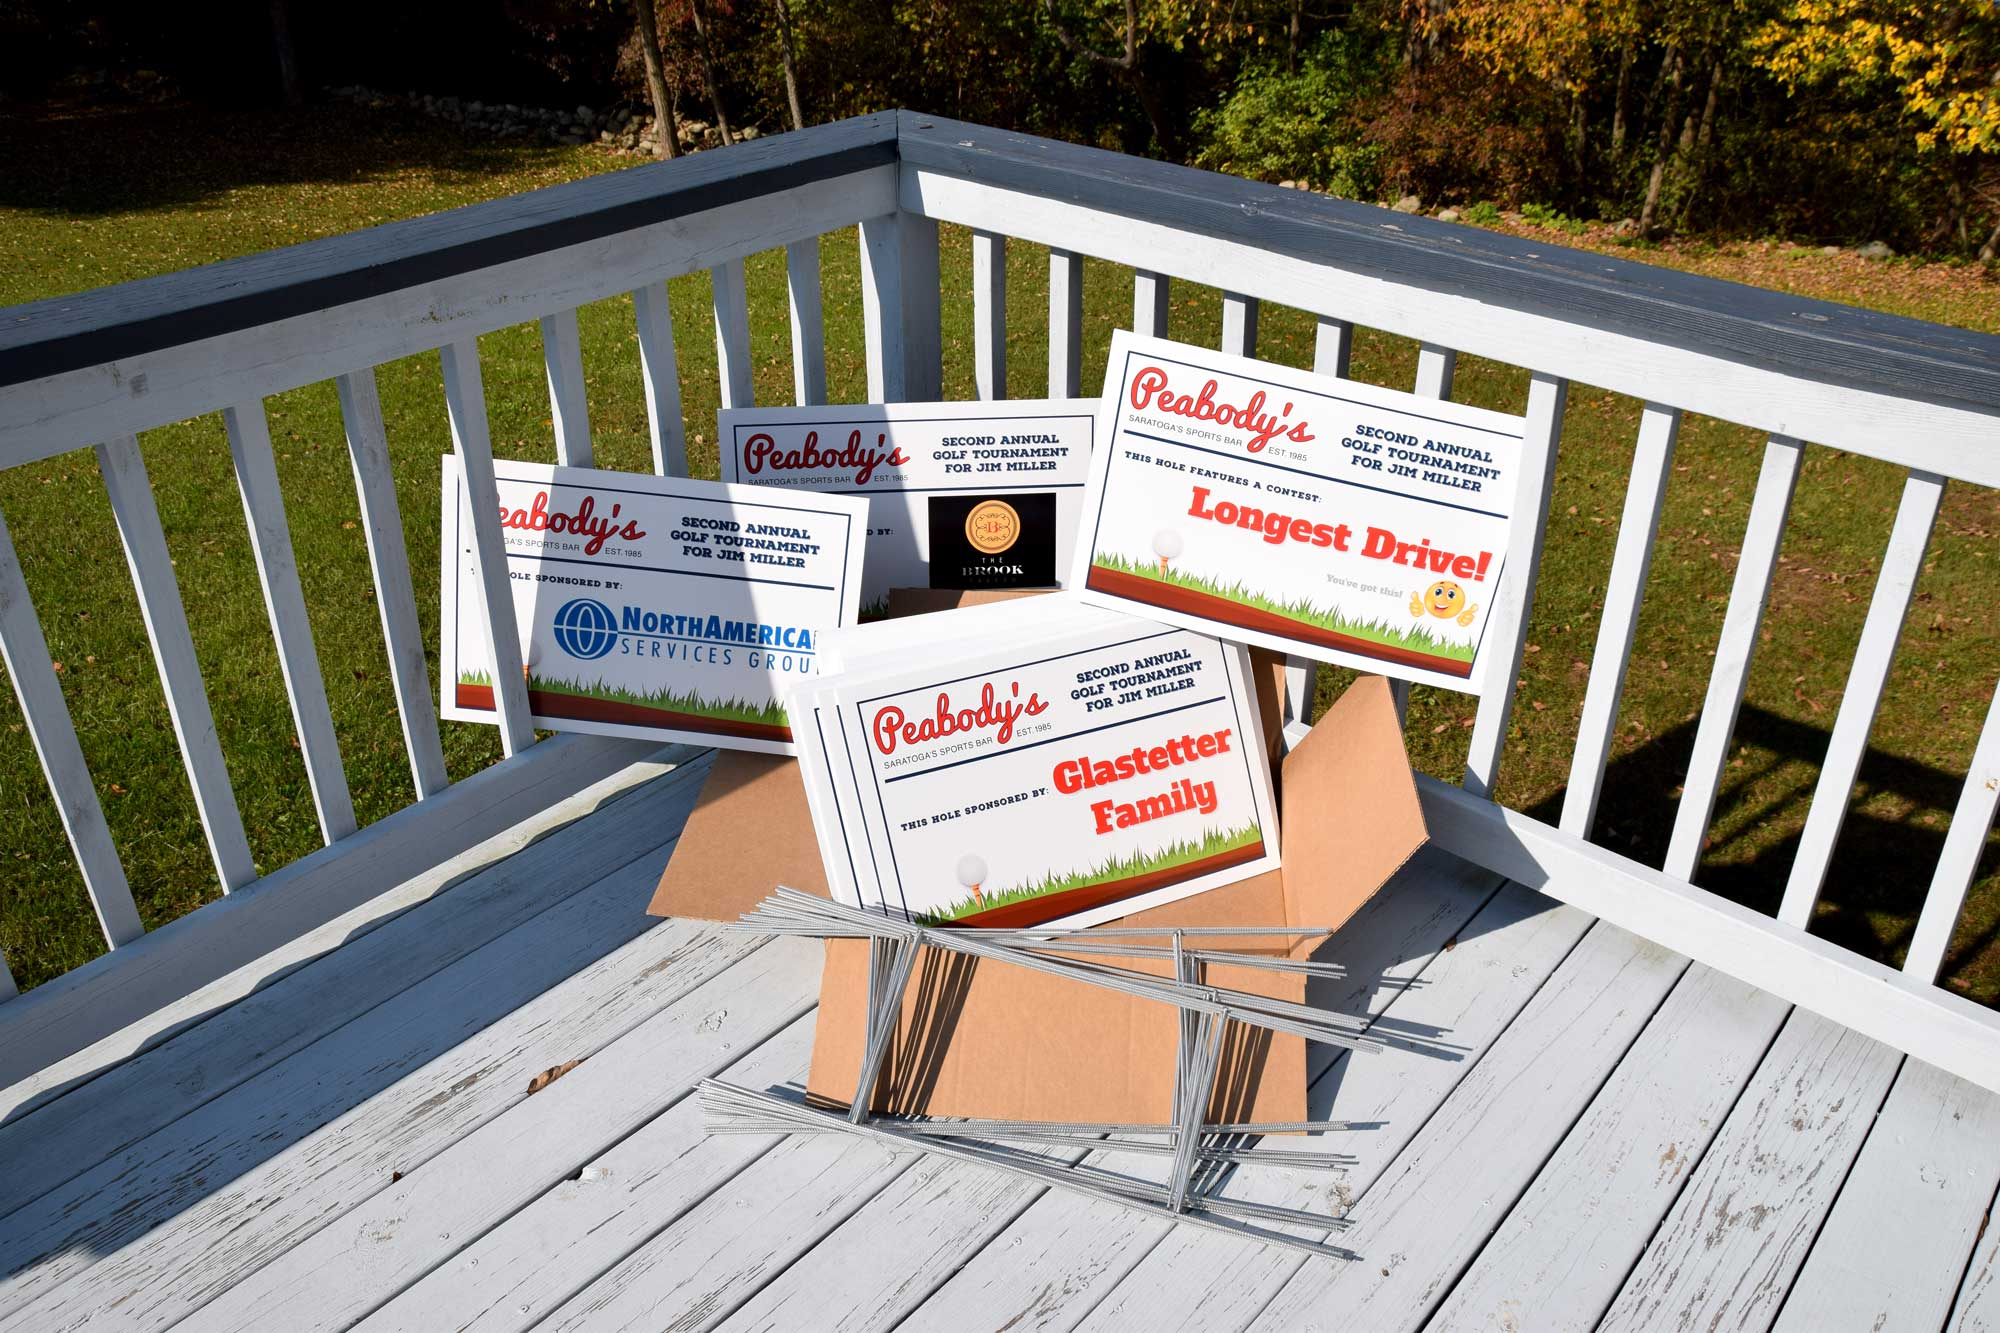 Photo of several tee signs created for Peabody's Sports Bar second annual golf tournament for Jim Miller.